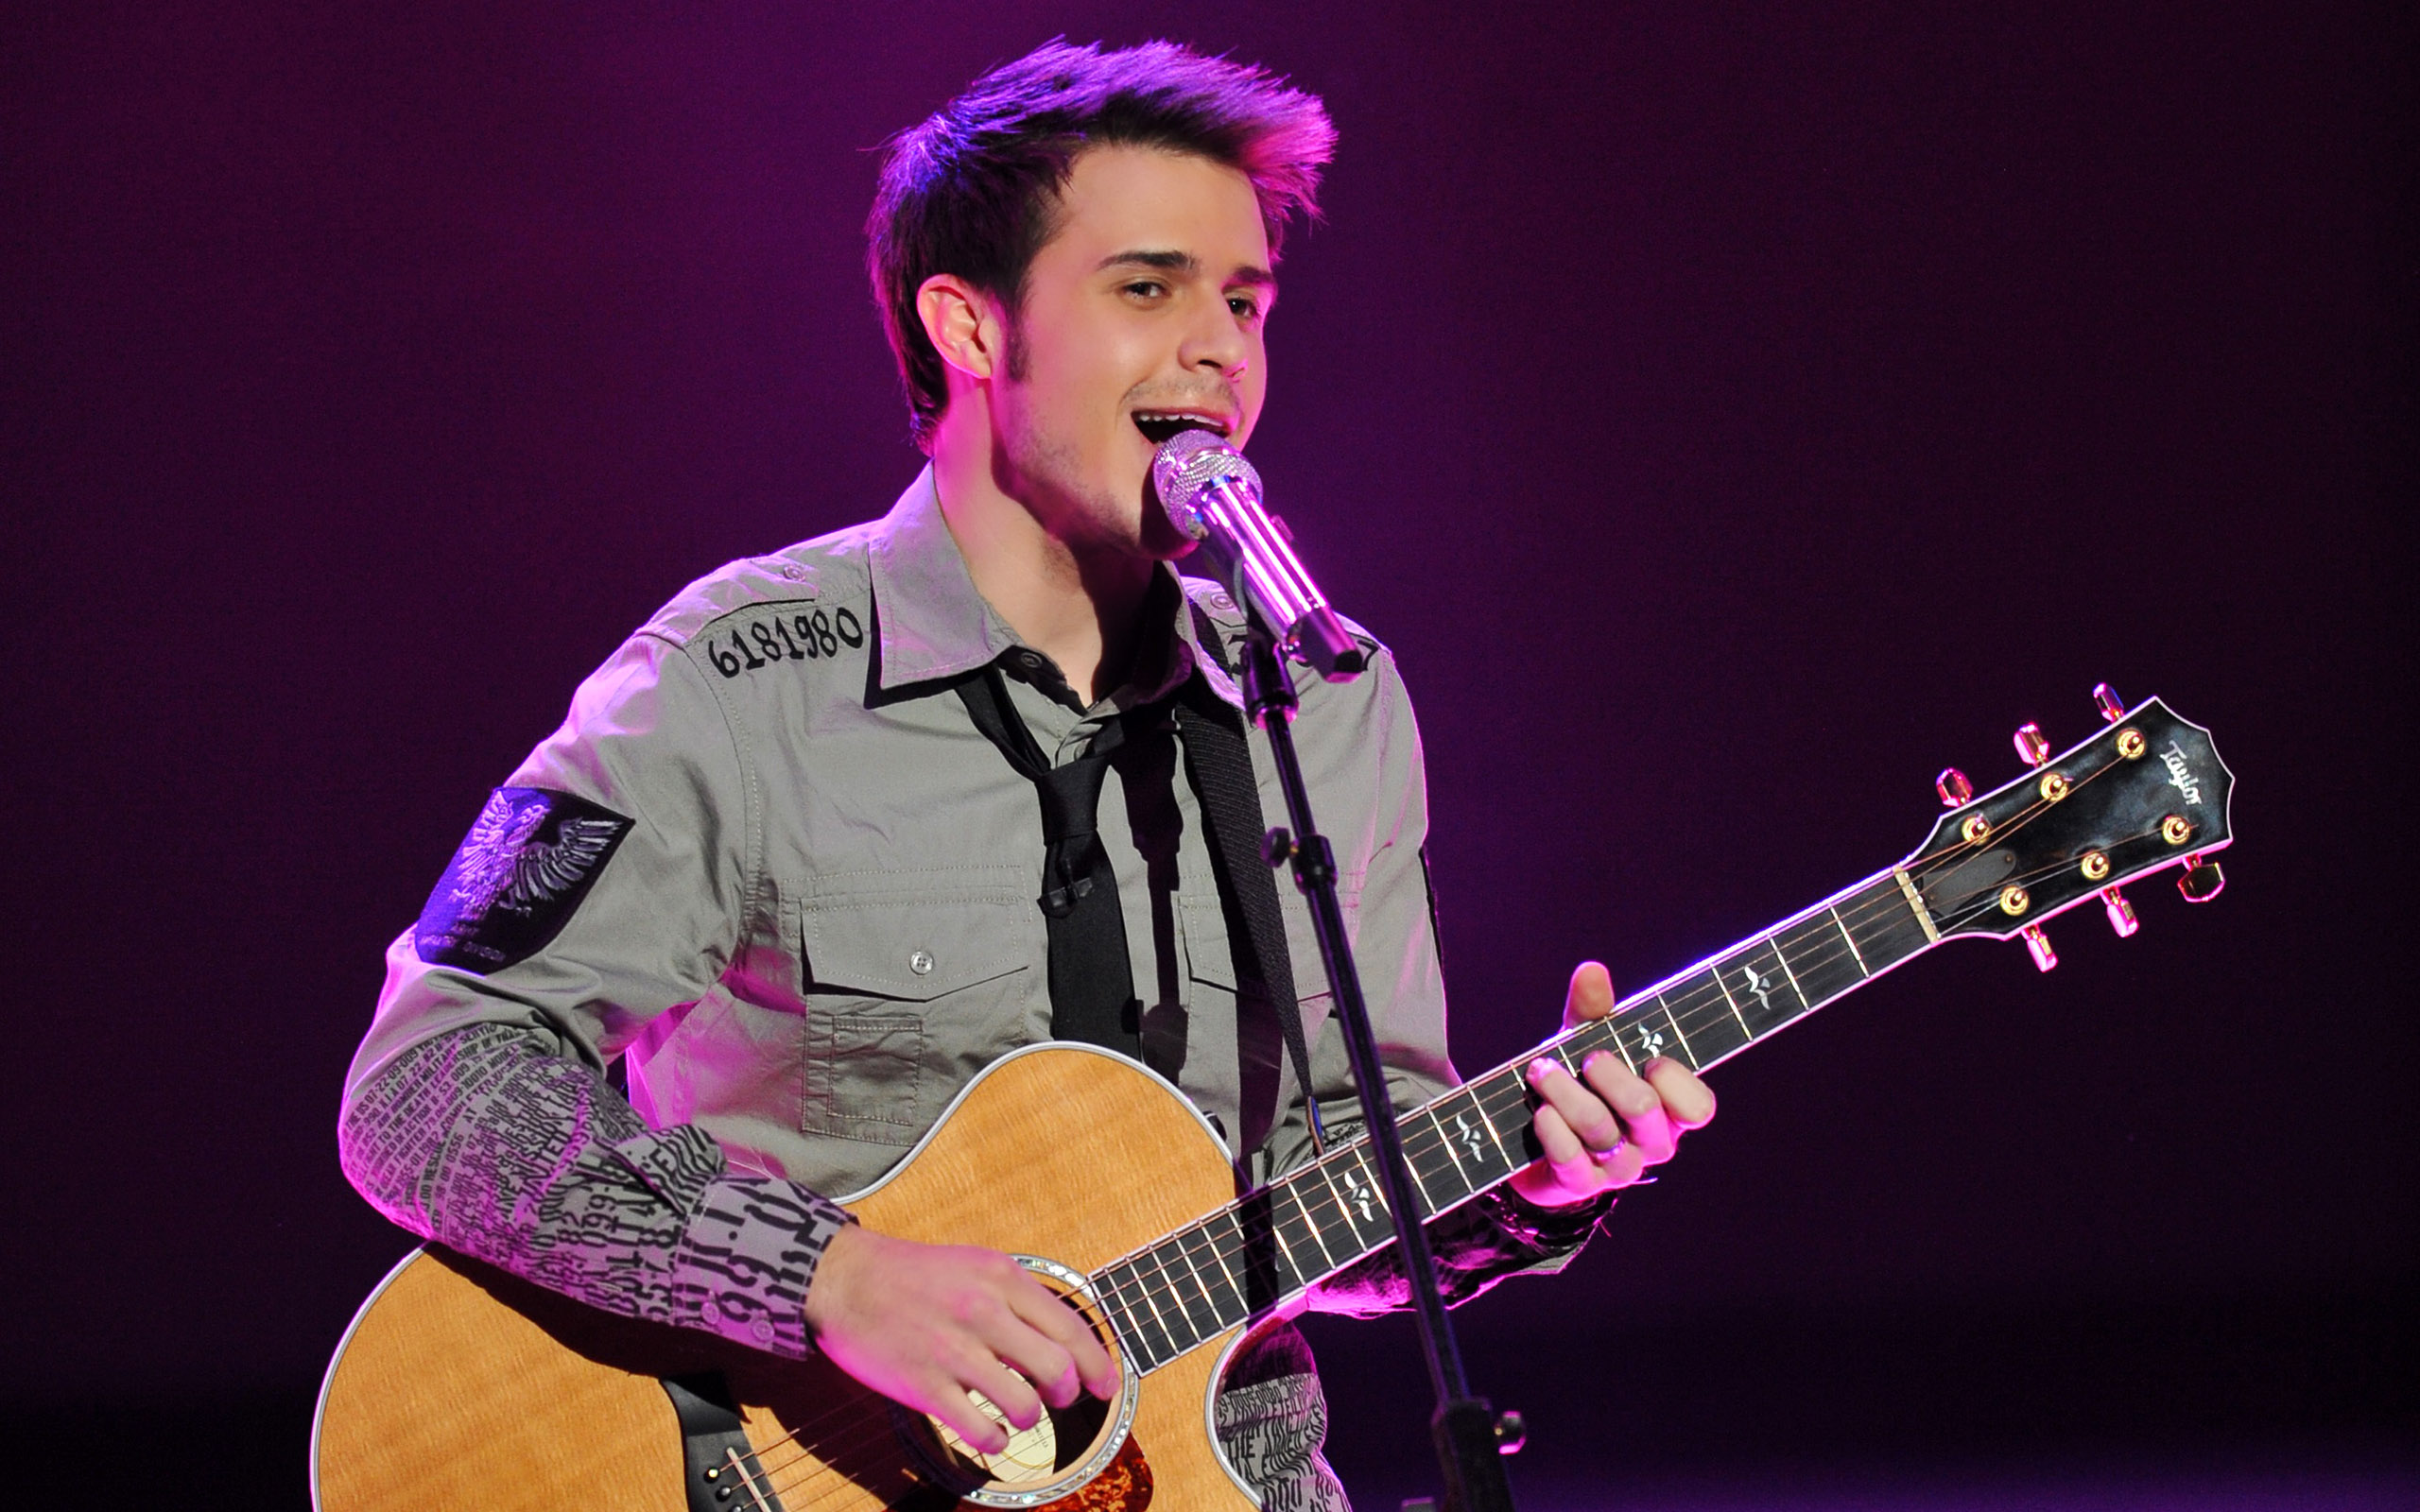 kris allen performing wallpaper background 59747